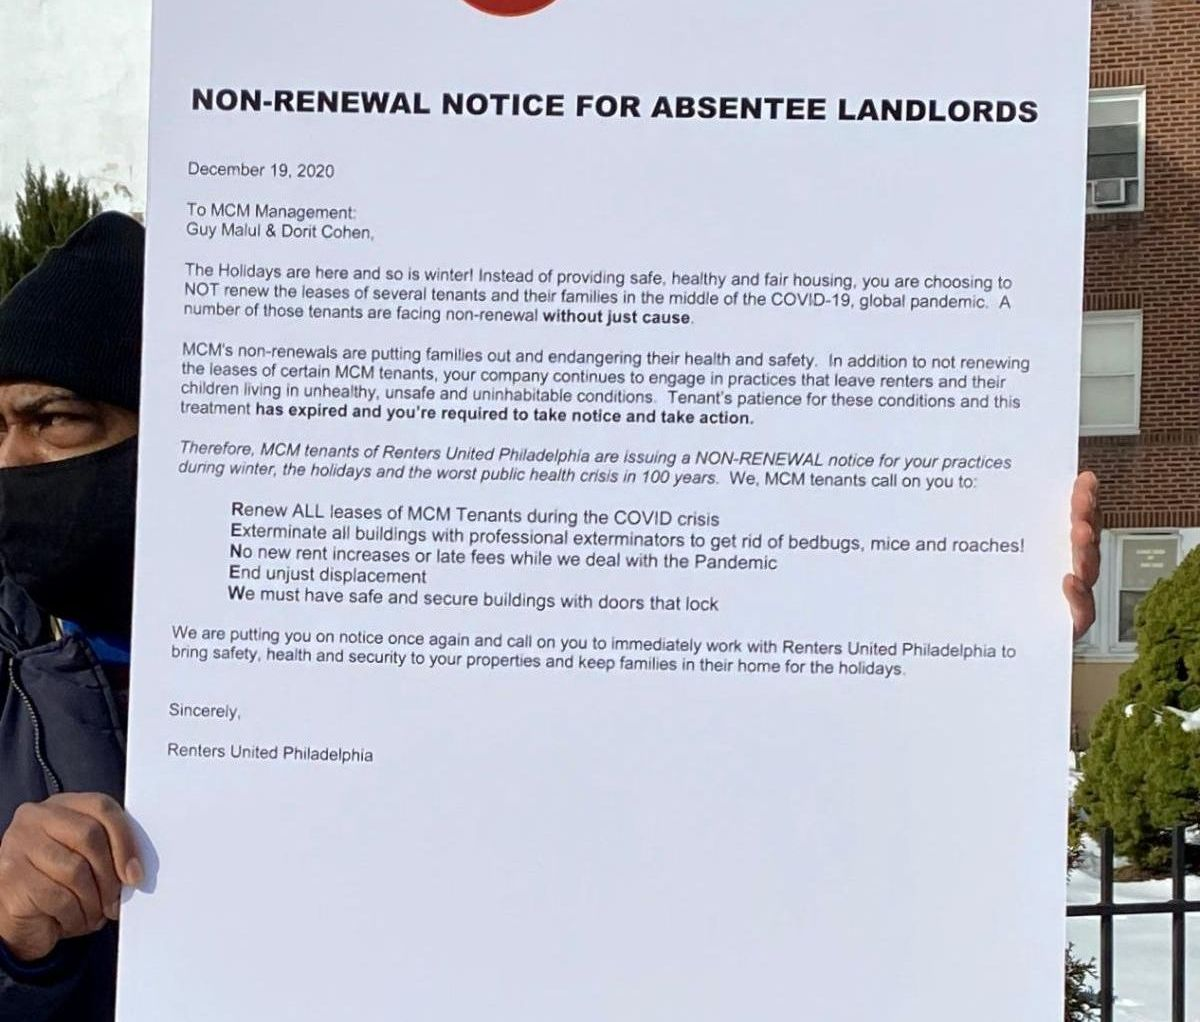 RUP presented MCM Management Solutions with a Non-Renewal Notice for Absentee Landlords at an action on December 19_ 2020